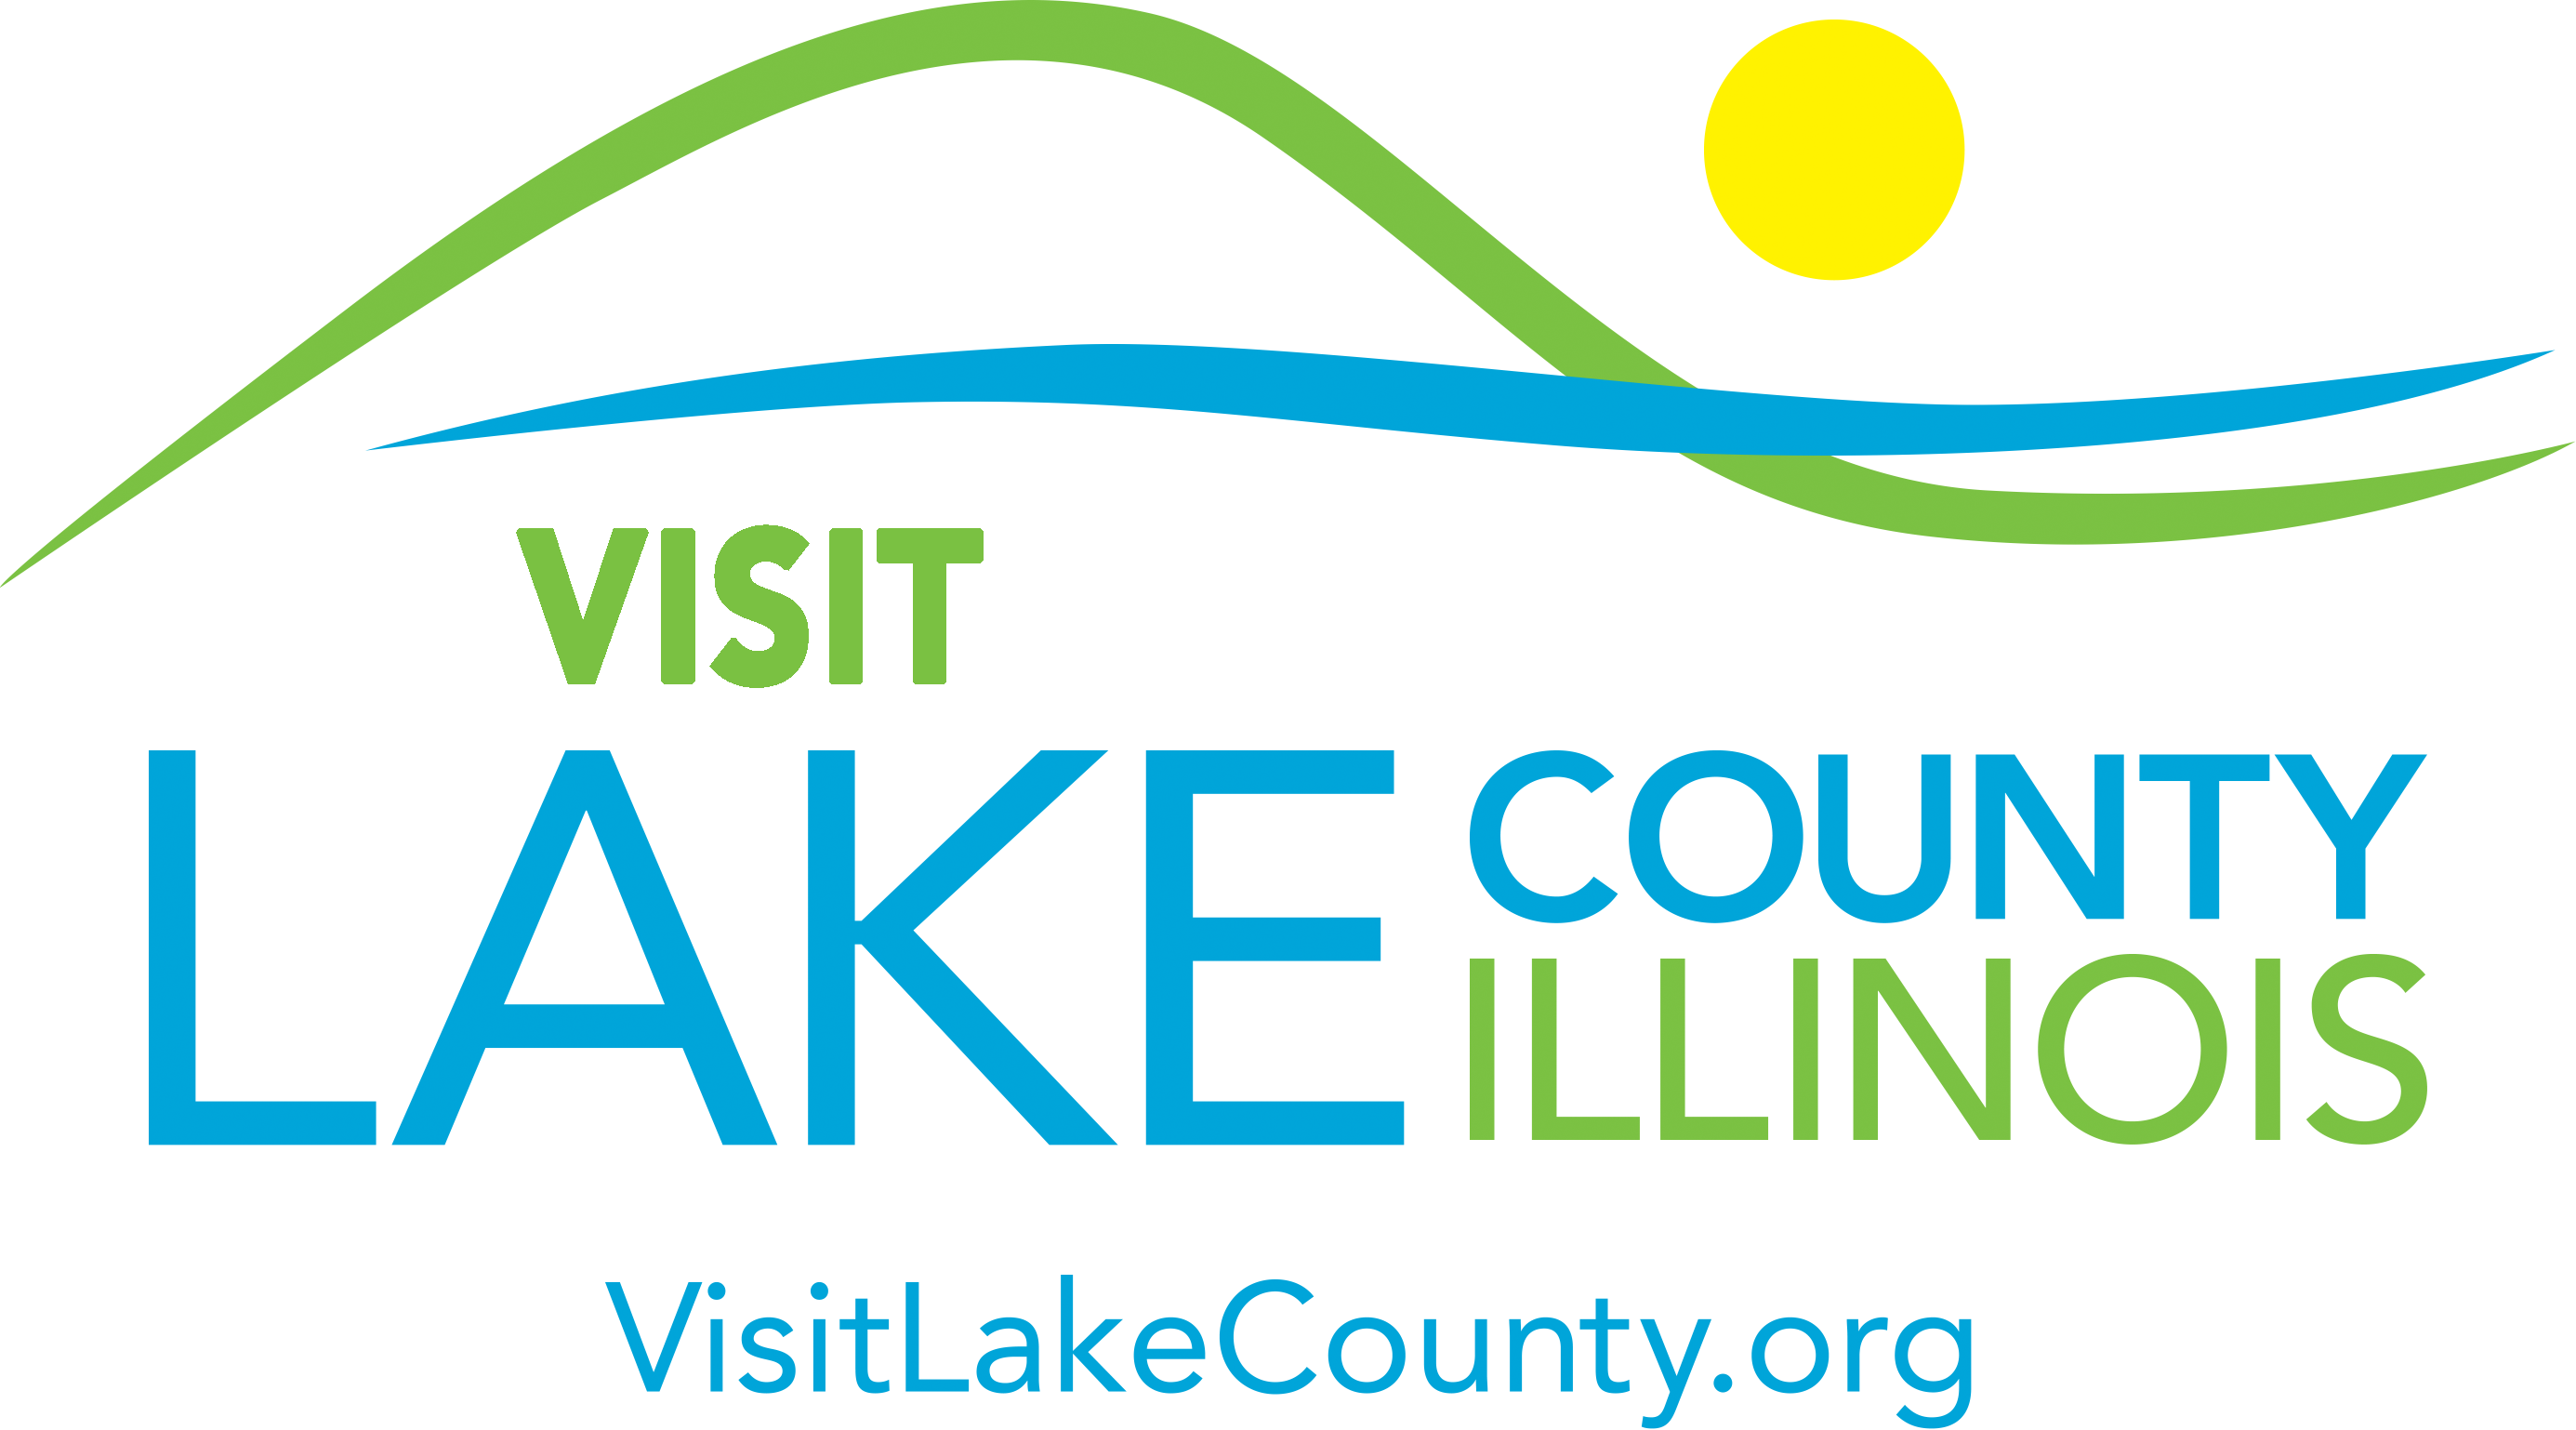 Lake County, CVB